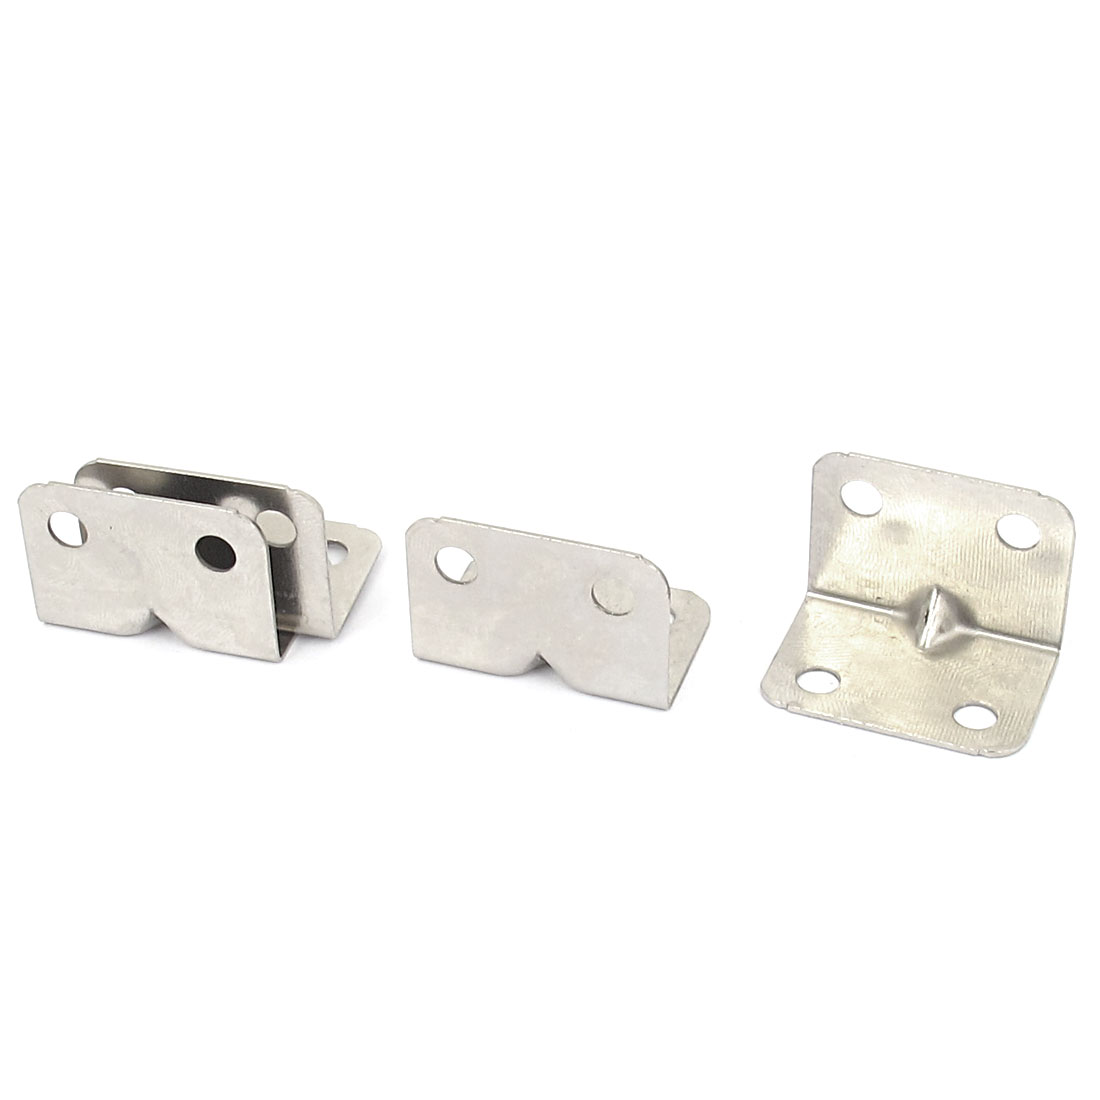 Furniture Cabinet Door Fastener Corner Braces Plate Right Angle Brackets 4 Pcs